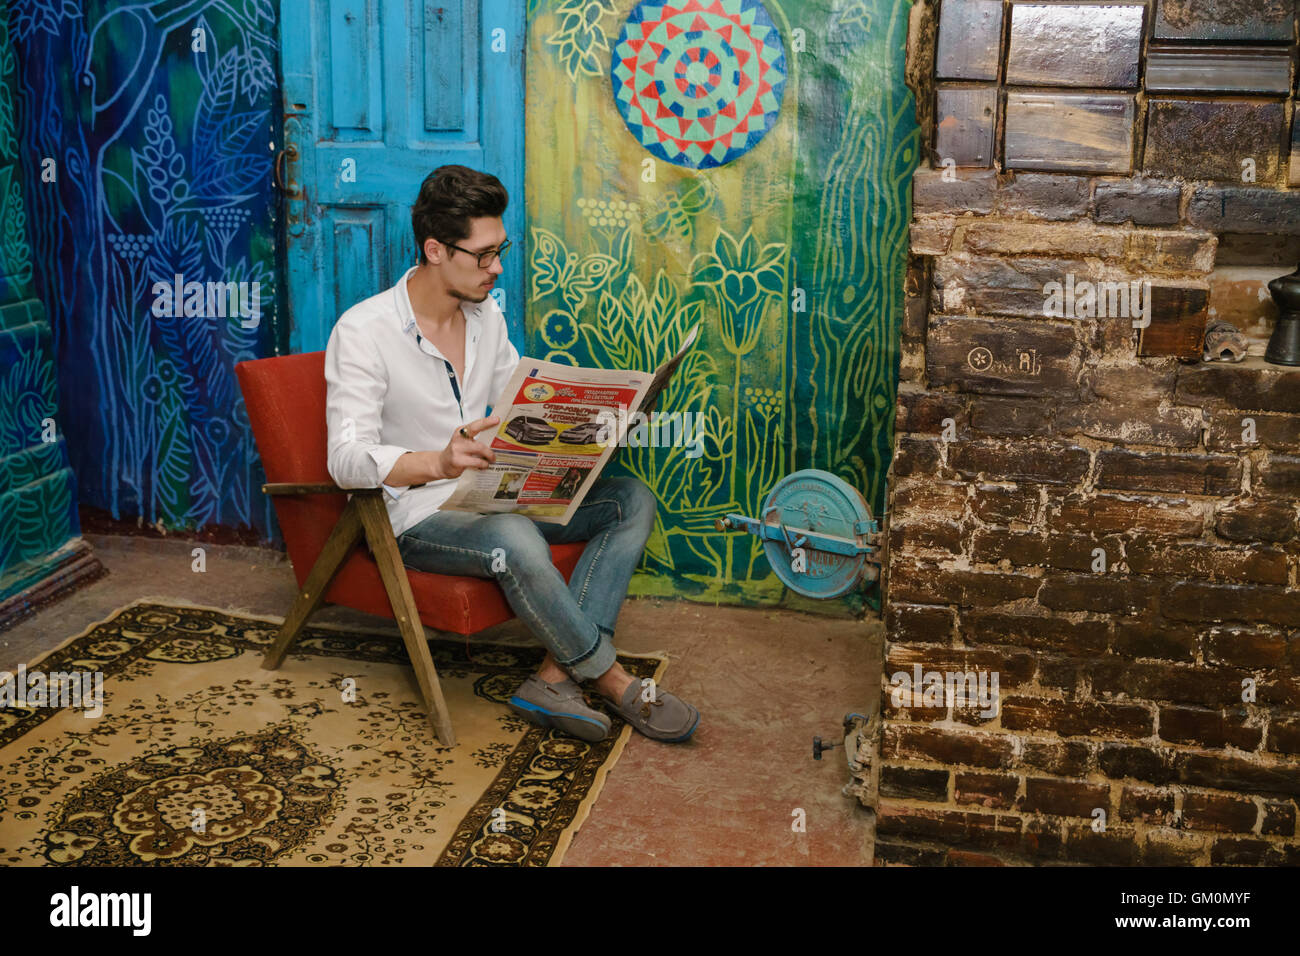 thoughtful reading of young man on the old armchair. There are old stove with opened flap near to reading man - Stock Image